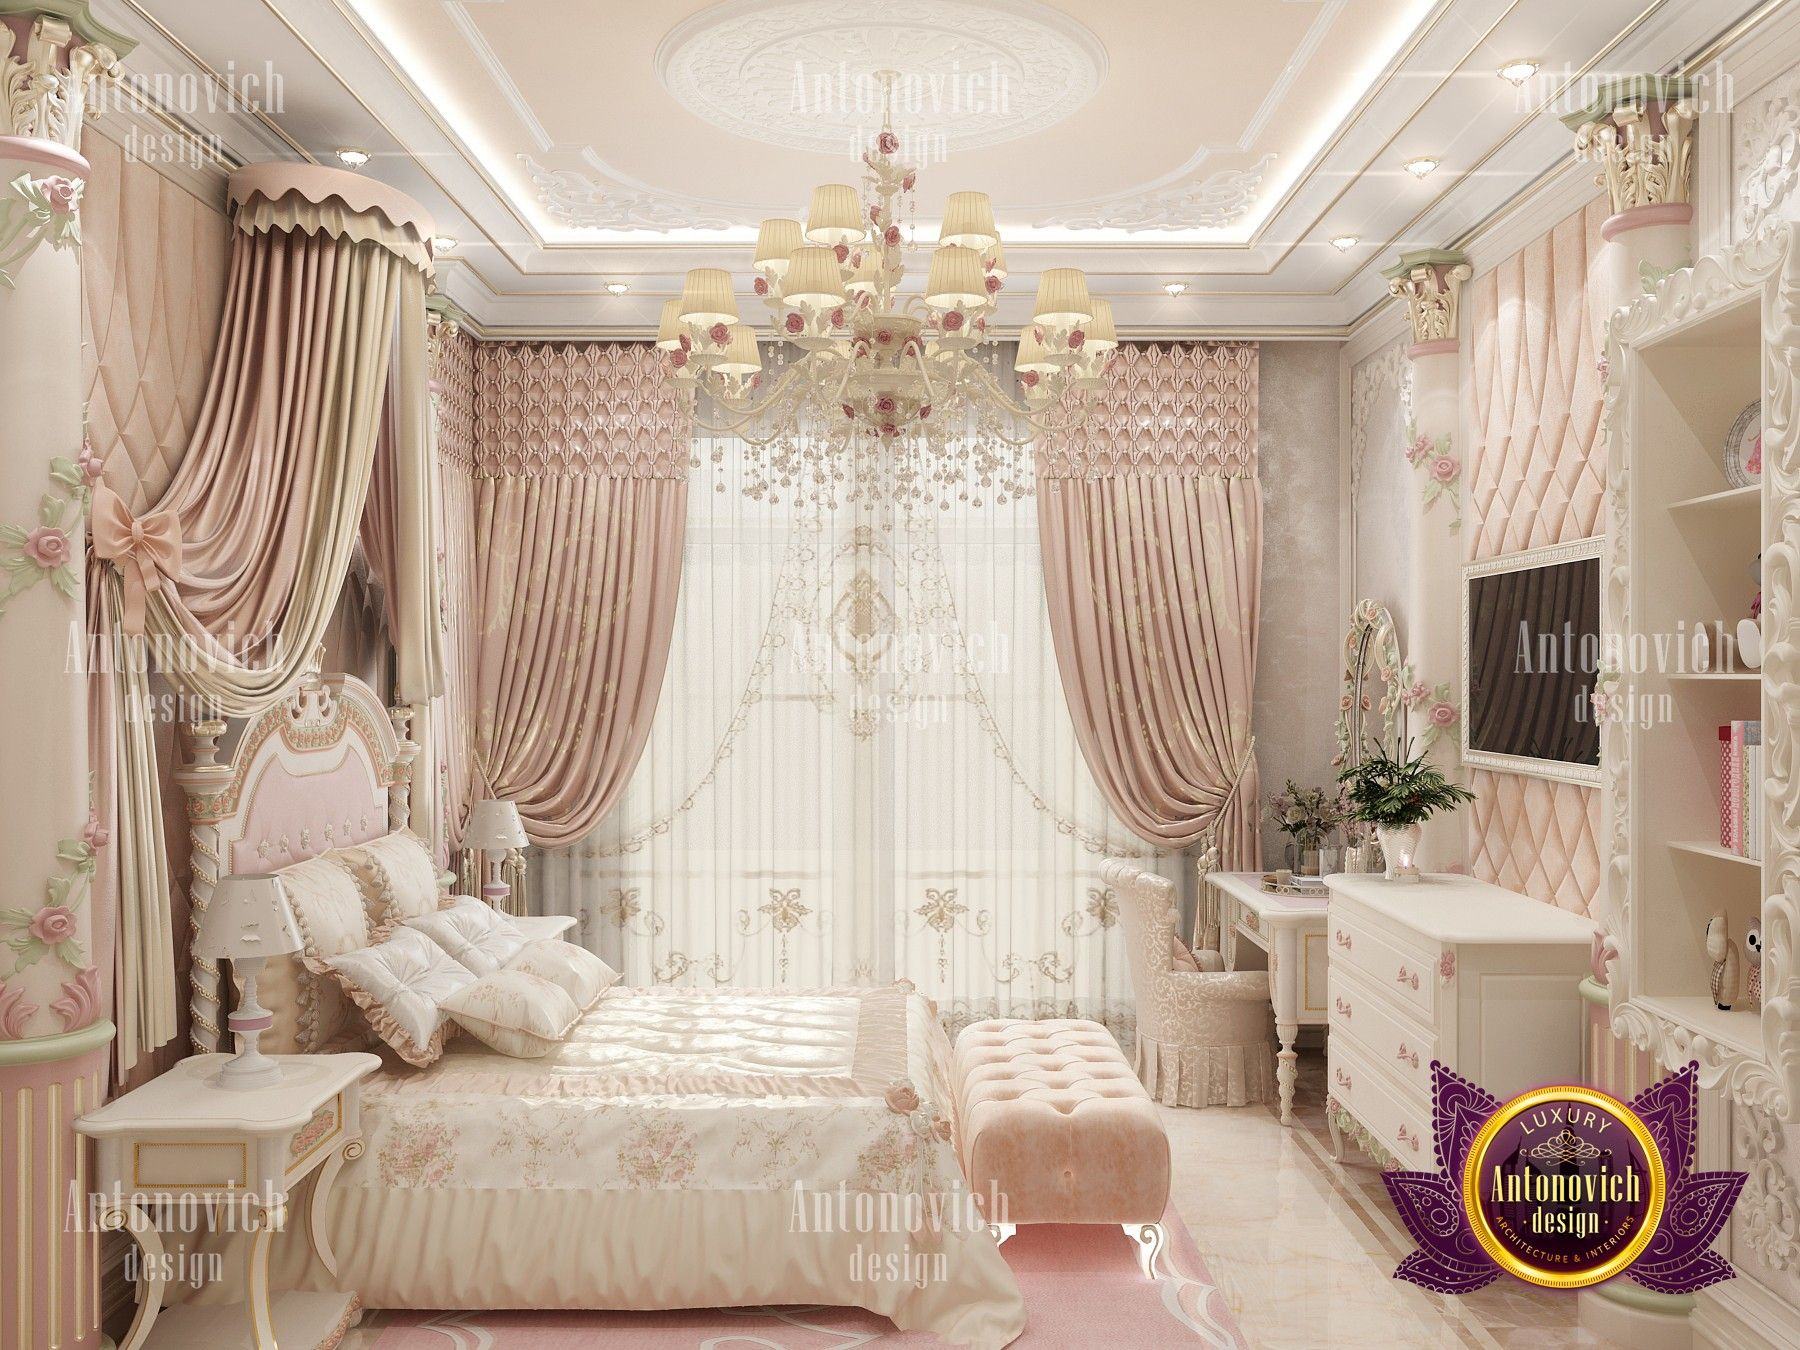 Girly Home Decor Dubai Favorite Concept Design Of All Time Superiority And High Grade Contact Us Luxurious Bedrooms Room Inspiration Bedroom Home Decor Luxury teenage girls bedroom